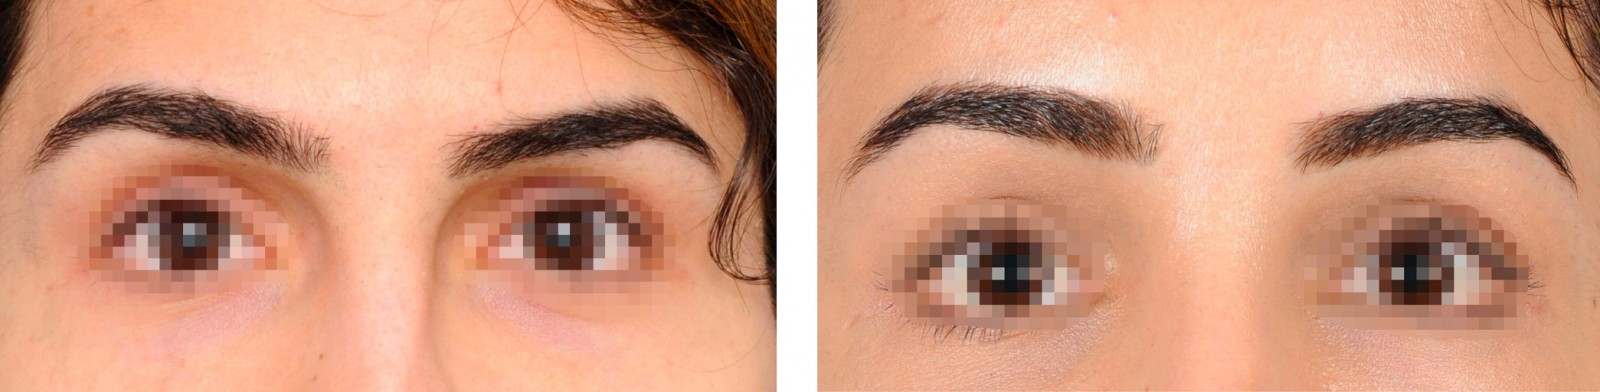 Before and after picture (frontal comparison) of a woman after an eyebrow lift.